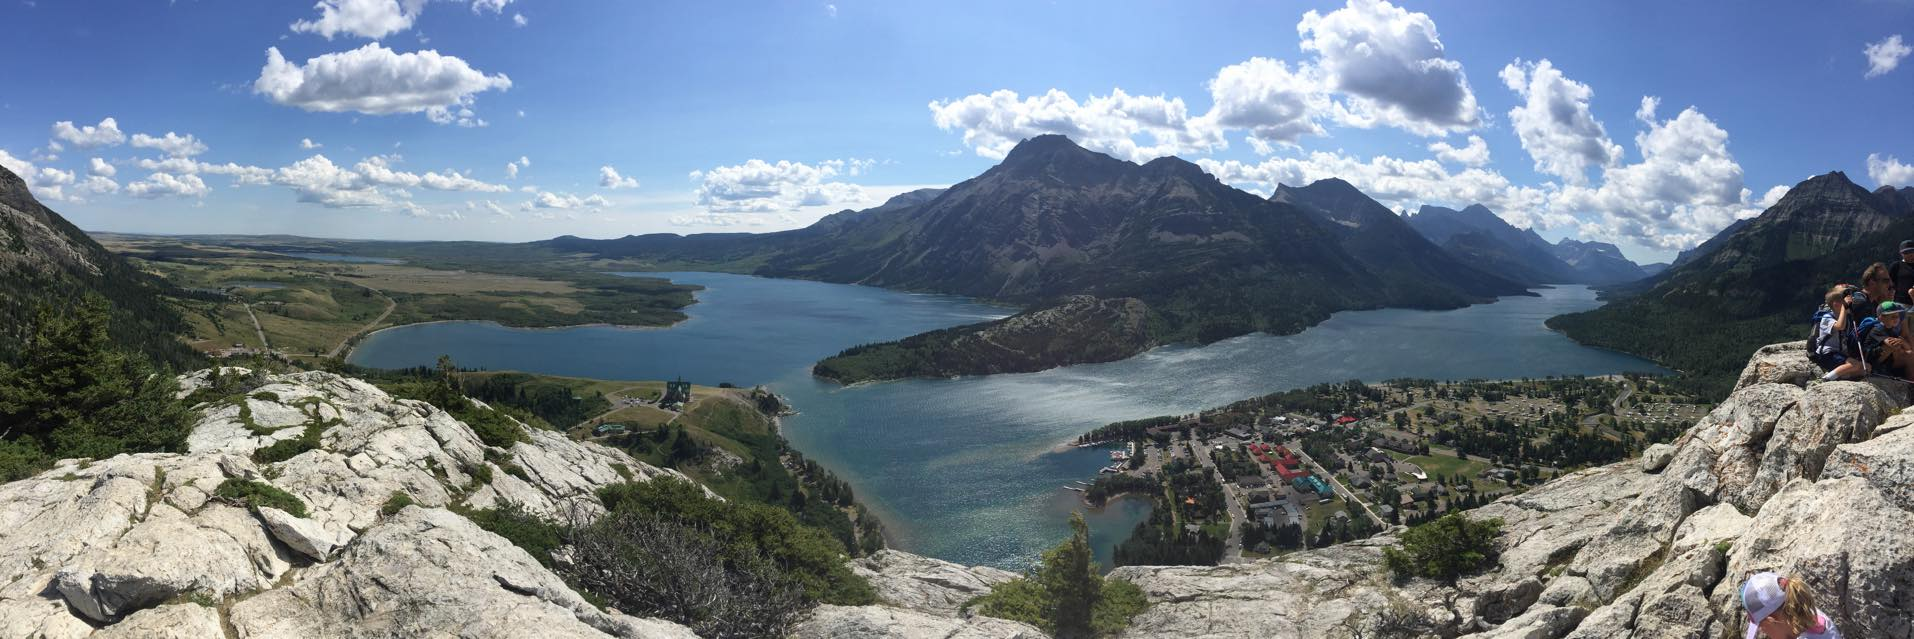 View of town from the end of a hike in Waterton Lakes National Park